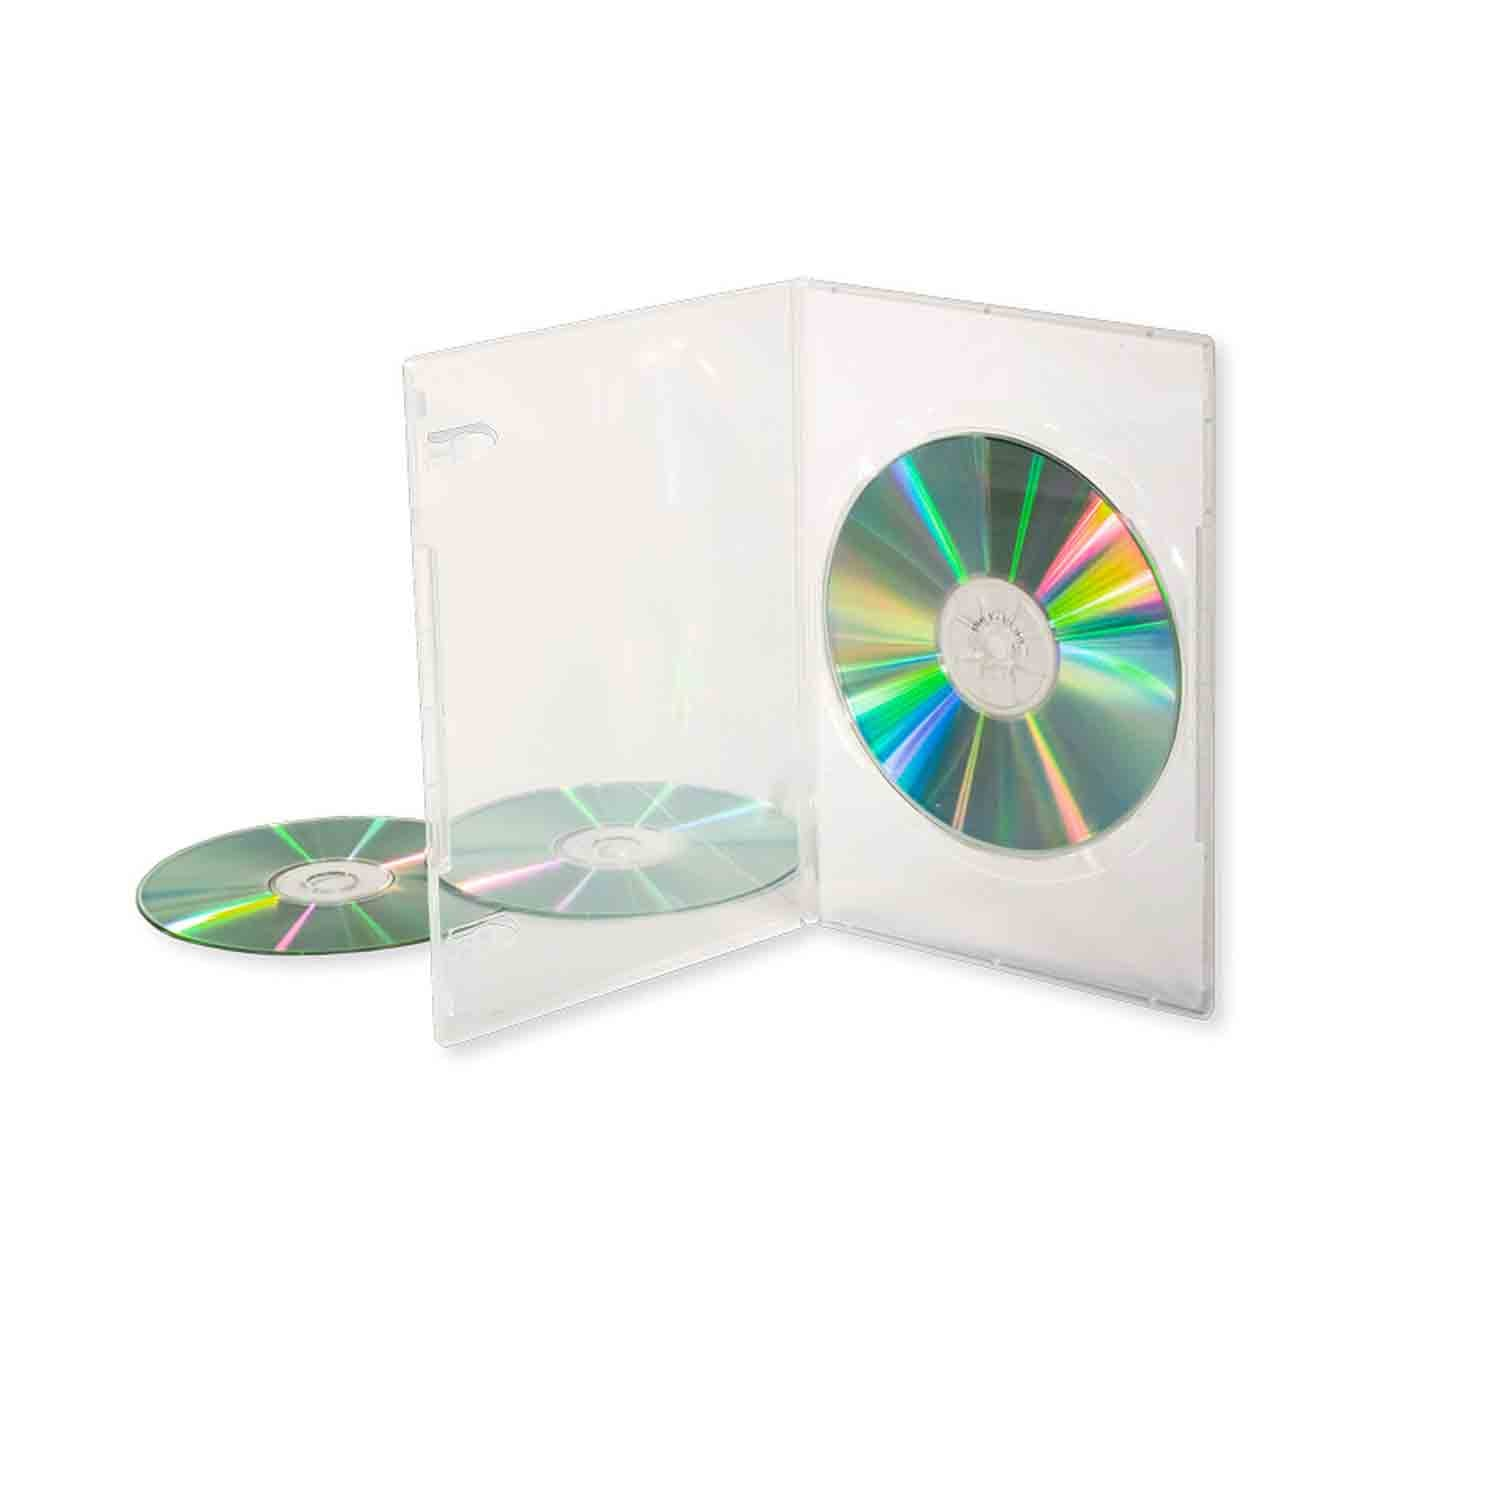 Transparent DVD Case